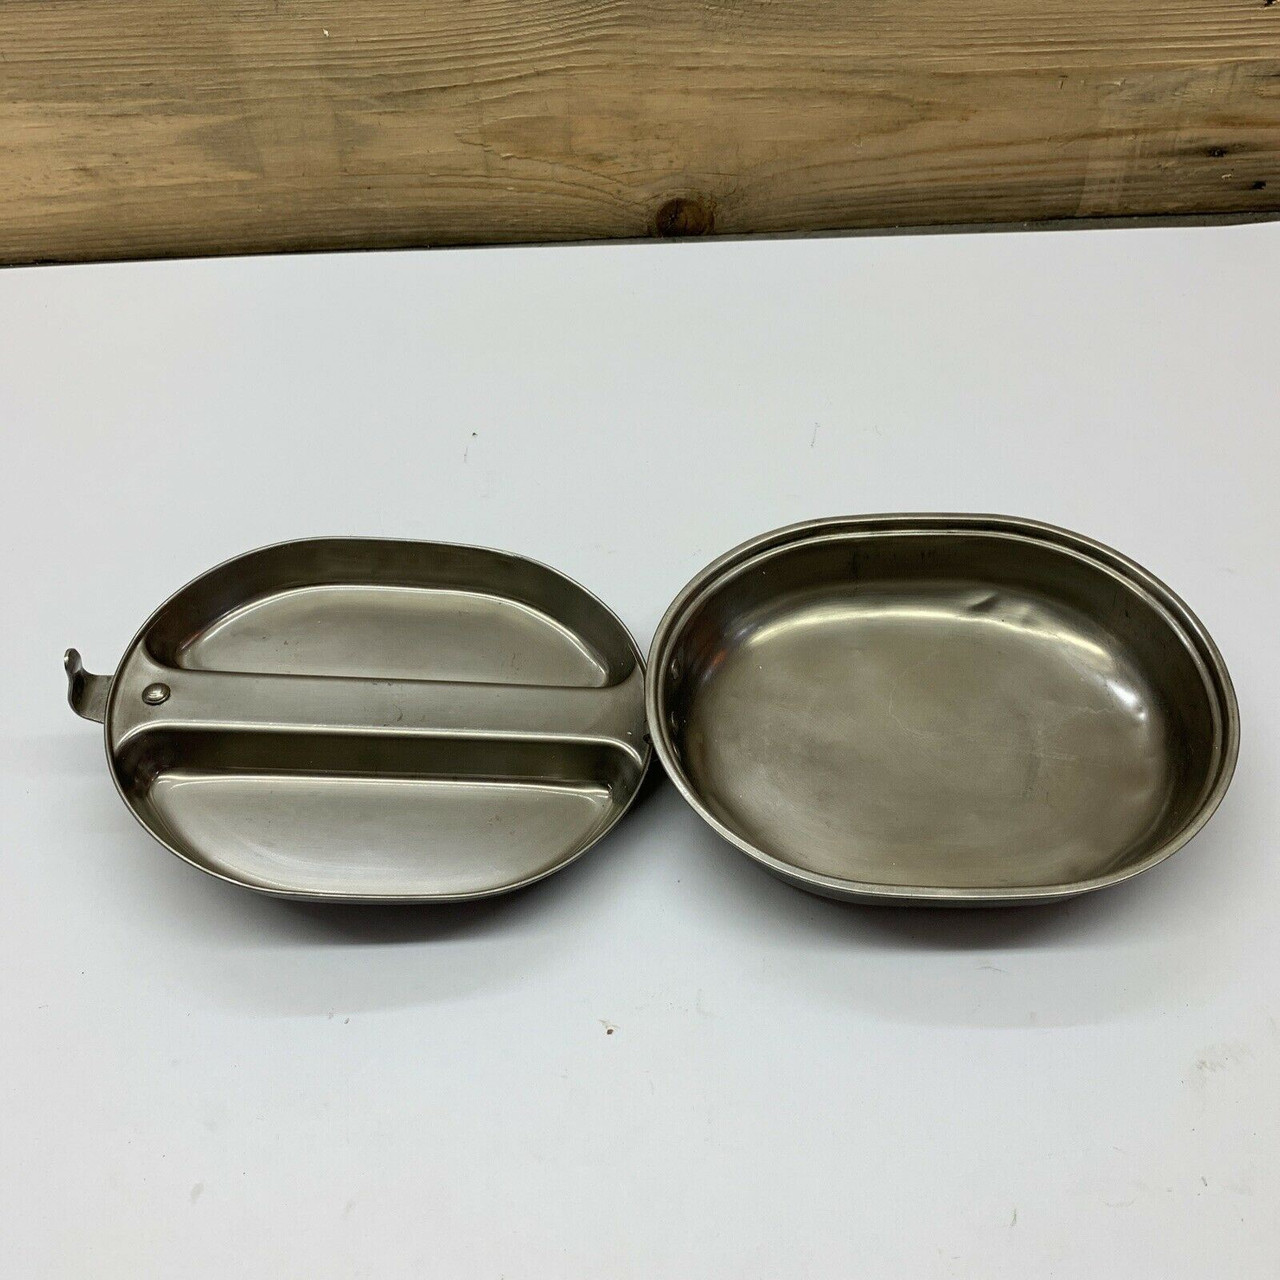 Mess Kit US Military Issue Stainless Steel Mess Kit Regal